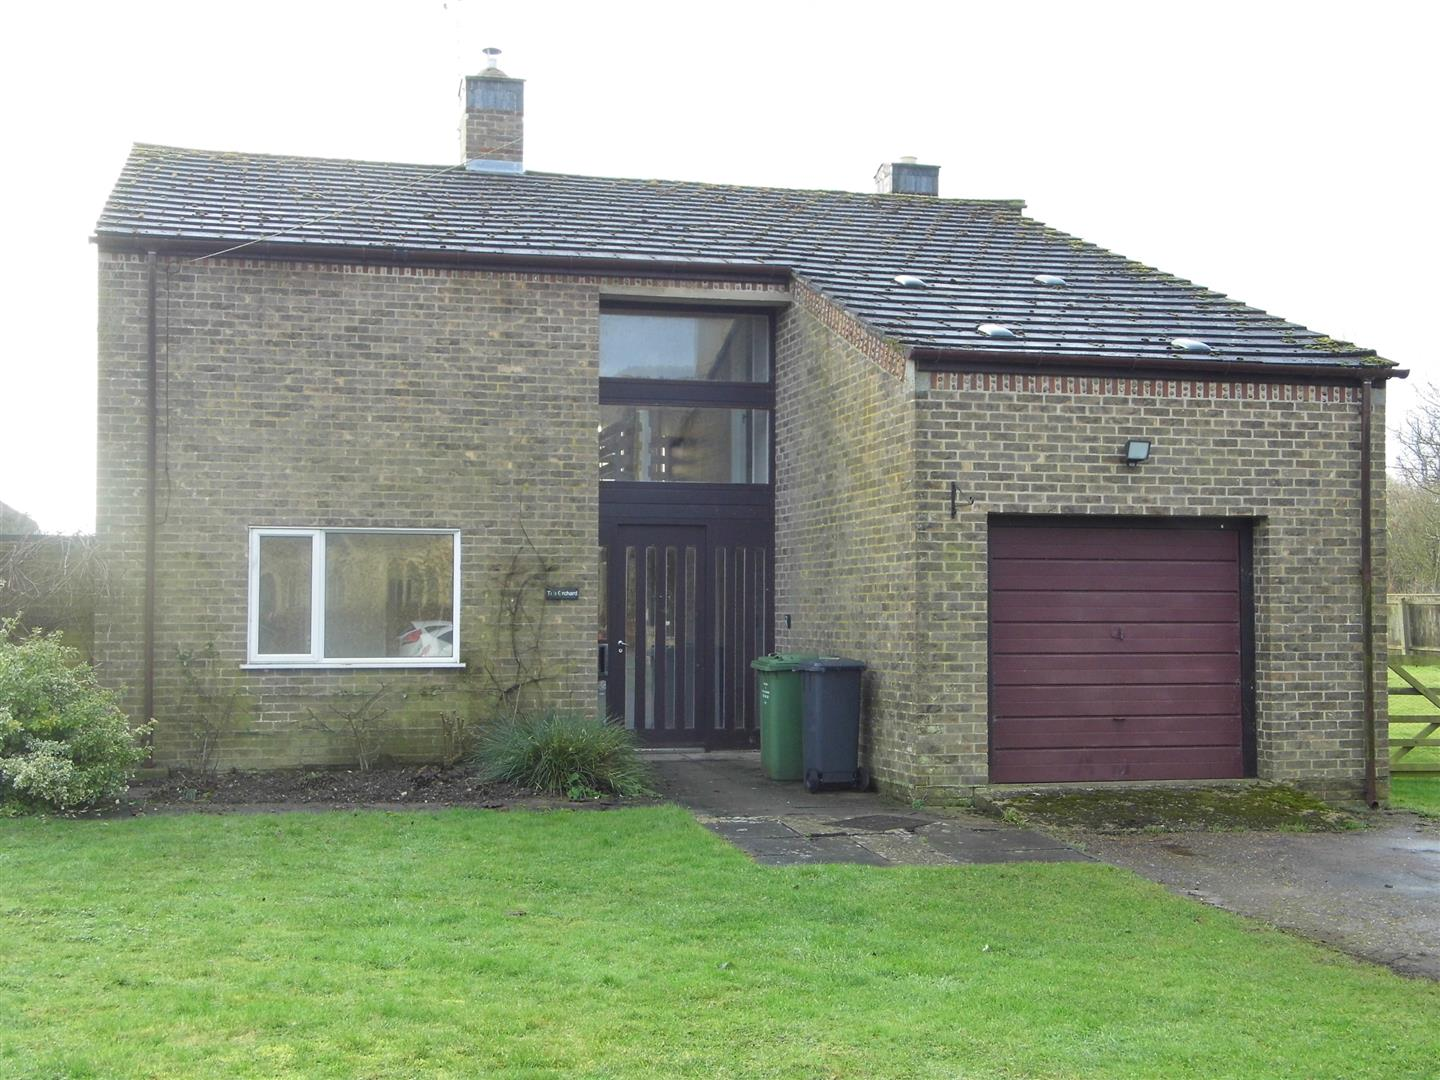 5 bed detached house to rent in Kings Lynn, PE33 9GF  - Property Image 1